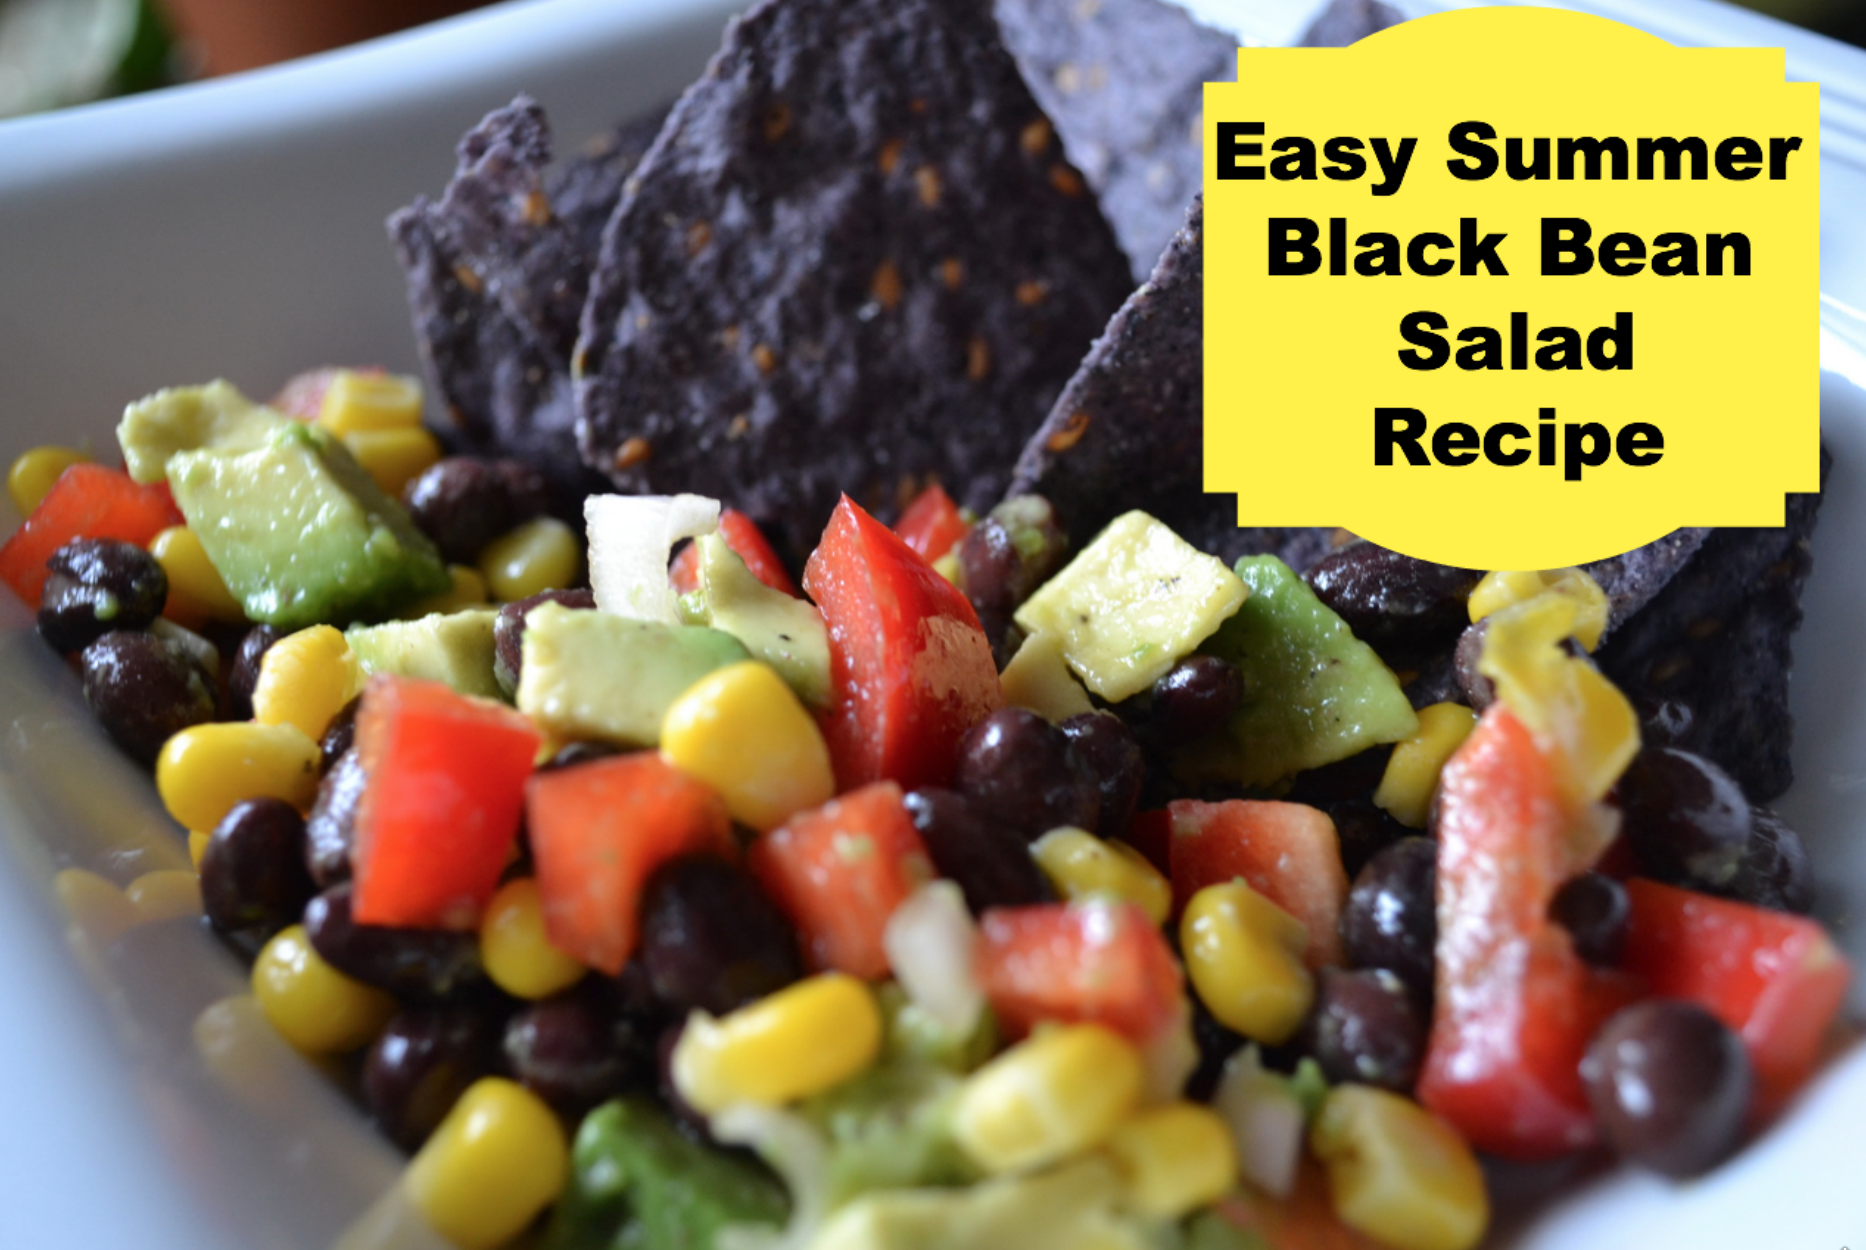 Easy Summer Black Bean Salad Recipe